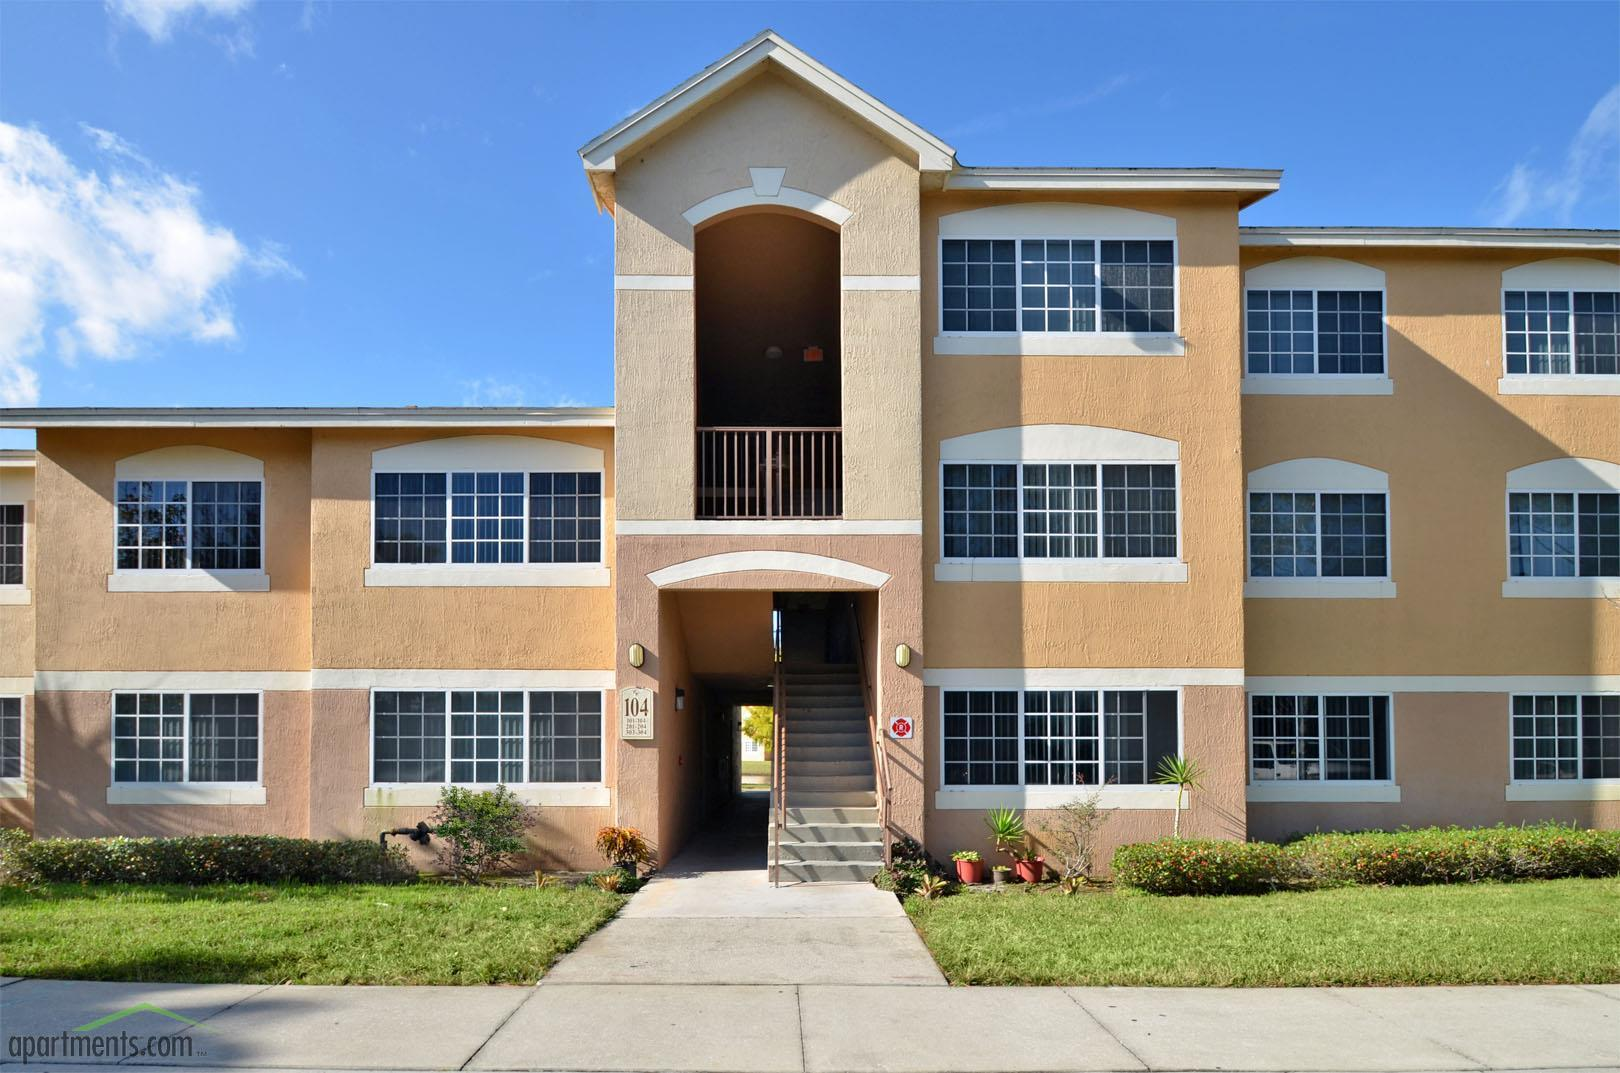 Apartments For Rent Near Daytona State College